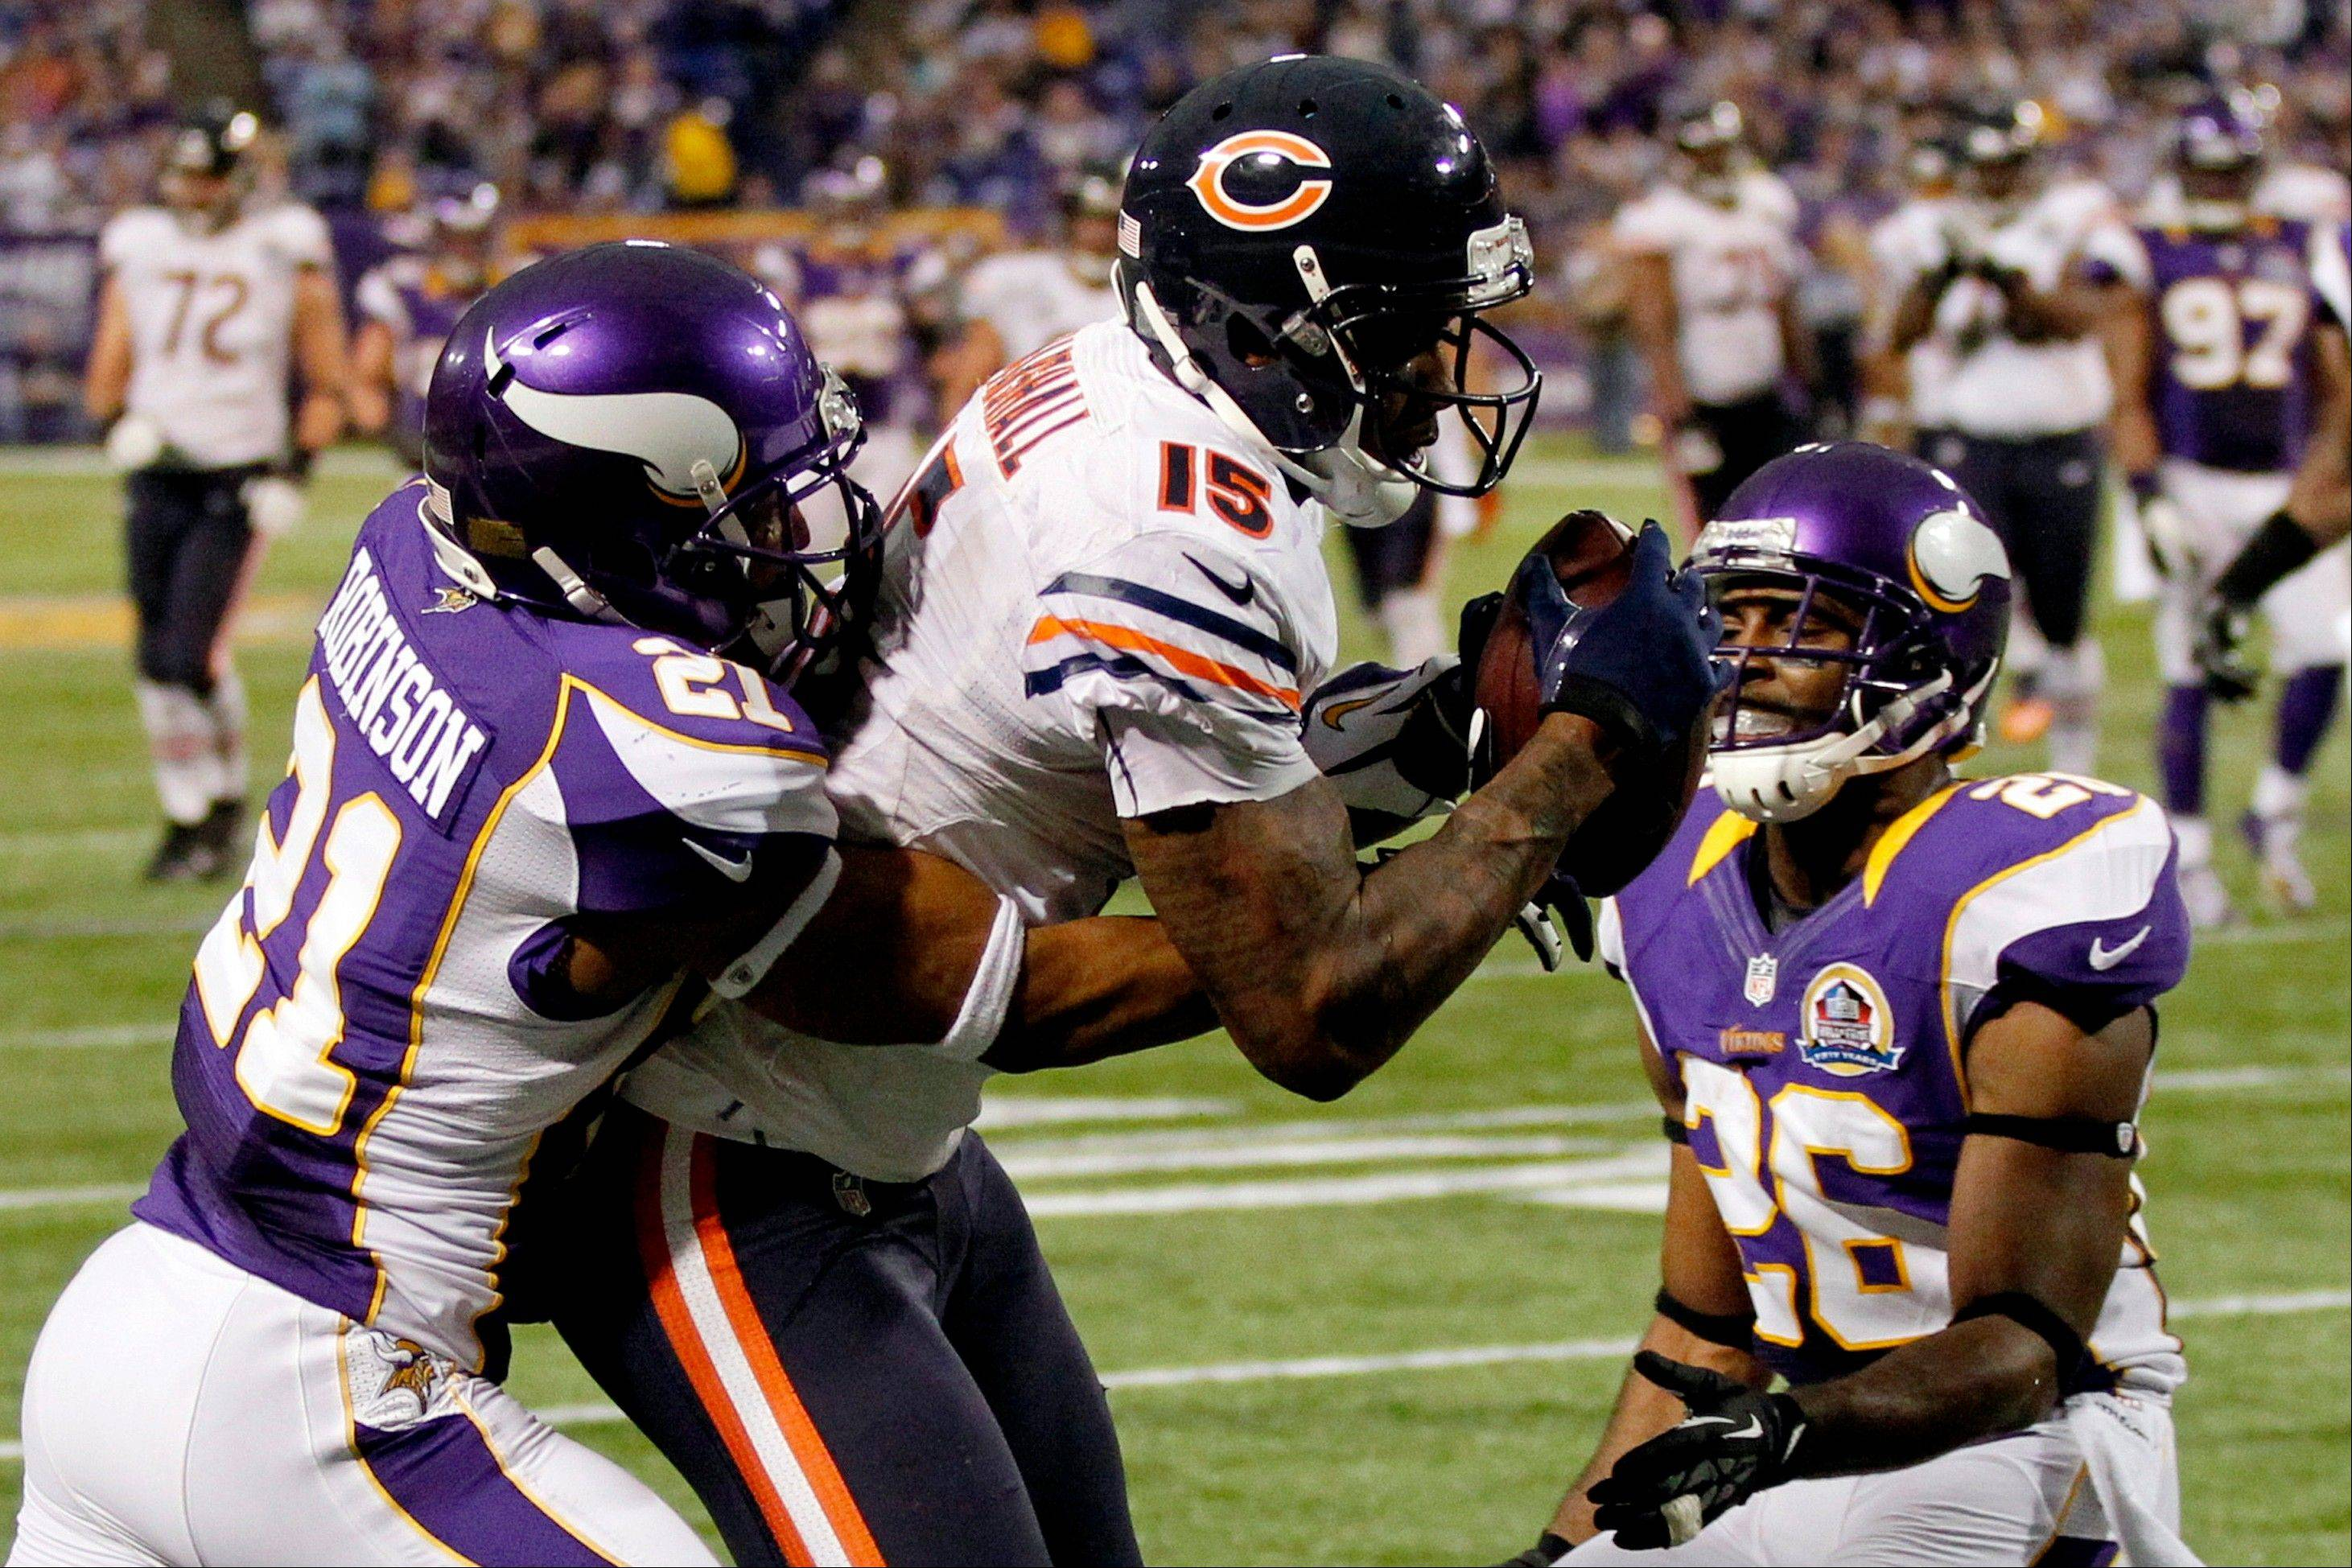 Chicago Bears wide receiver Brandon Marshall, center, catches a 16-yard touchdown pass between Minnesota Vikings cornerback Josh Robinson, left, and cornerback Antoine Winfield, right, during the second half. The Vikings won 21-14.